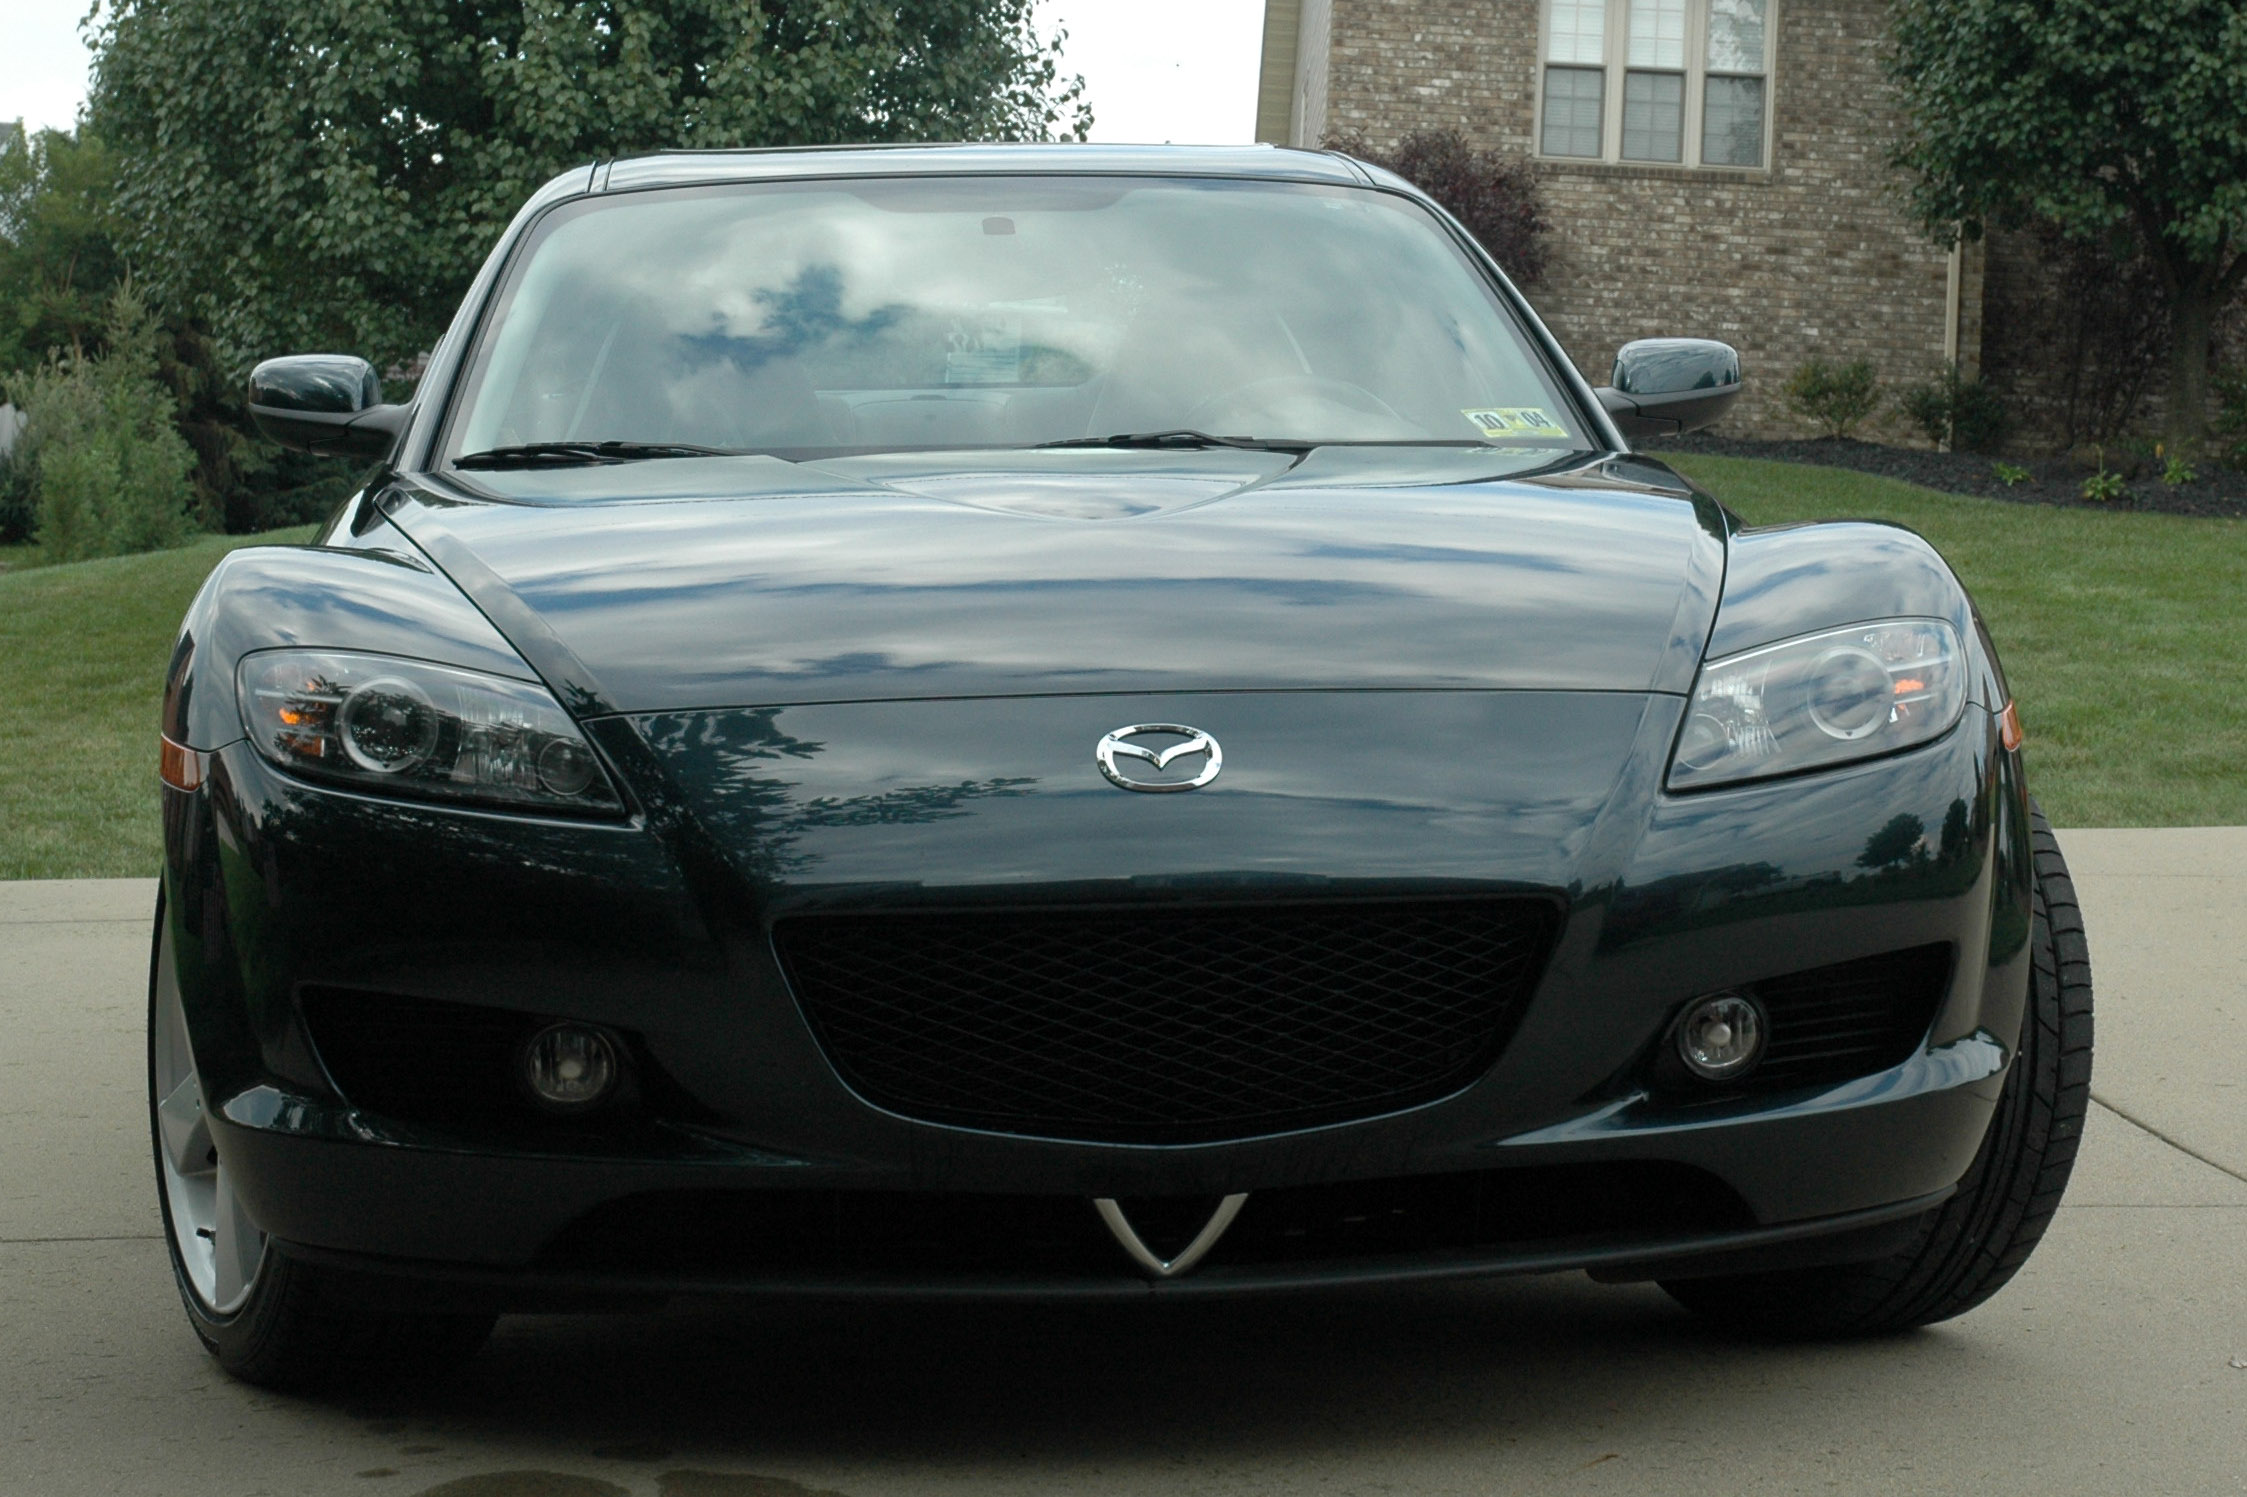 our Nordic Green 2004 RX-8 6-speed GT